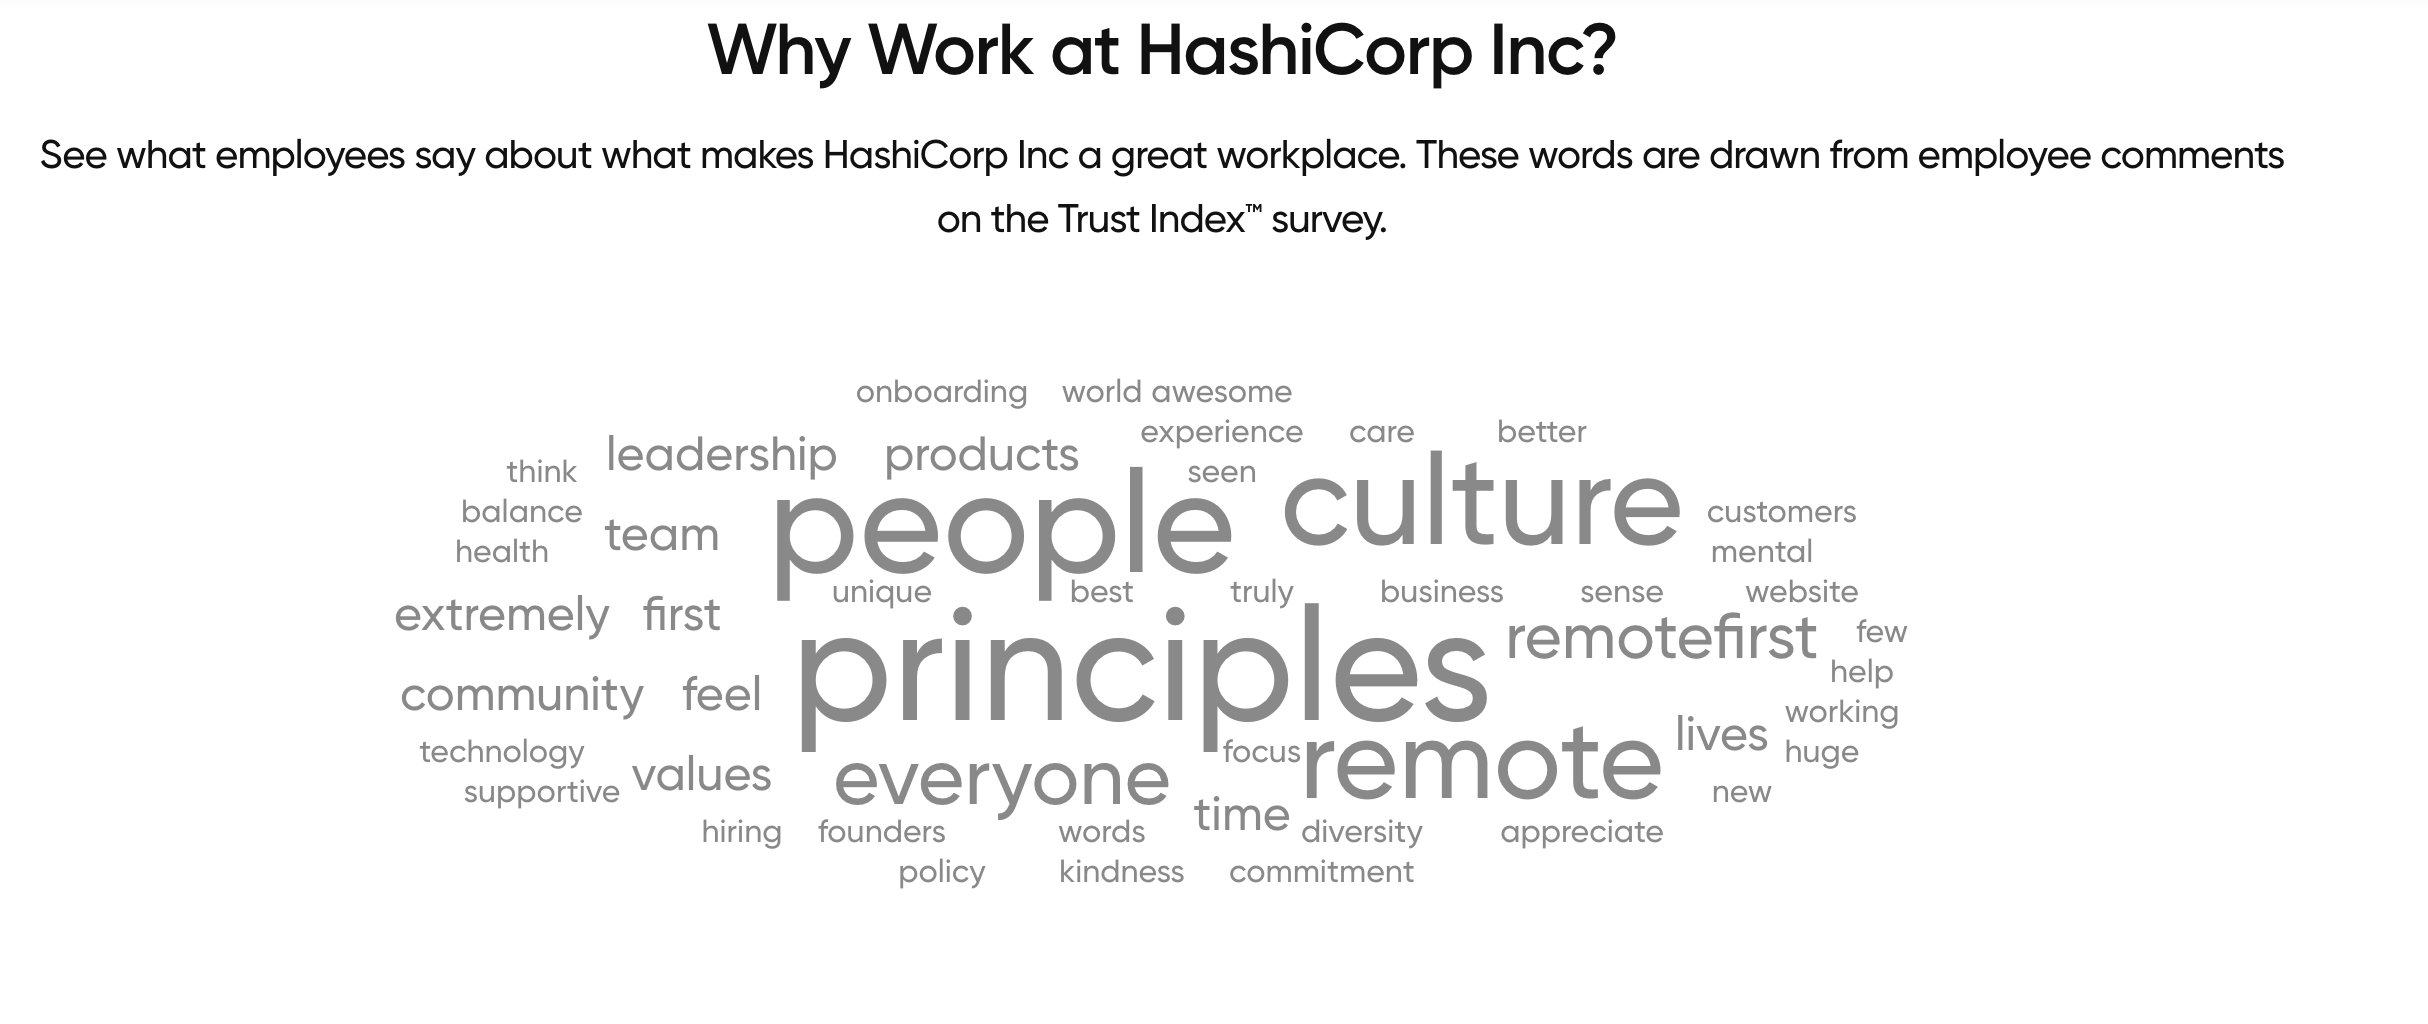 Why Work at HashiCorp employee responses